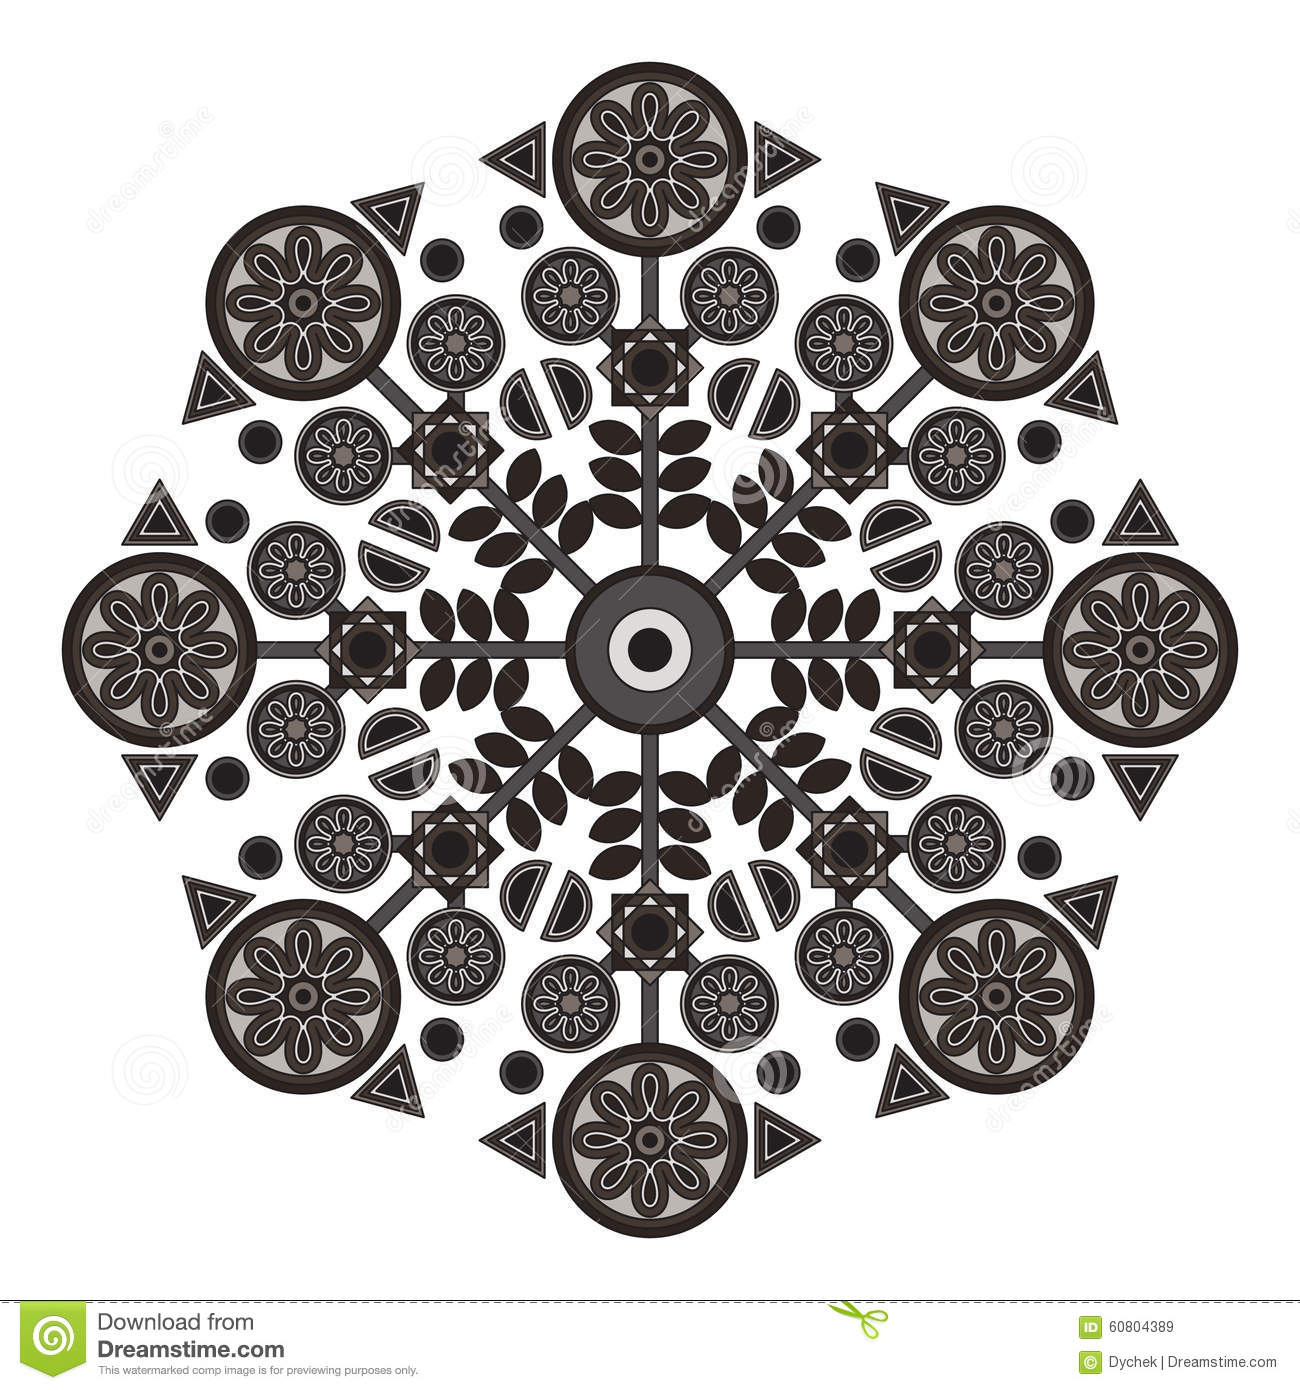 Mandala With Flowers And Geometric Shapes Stock Vector